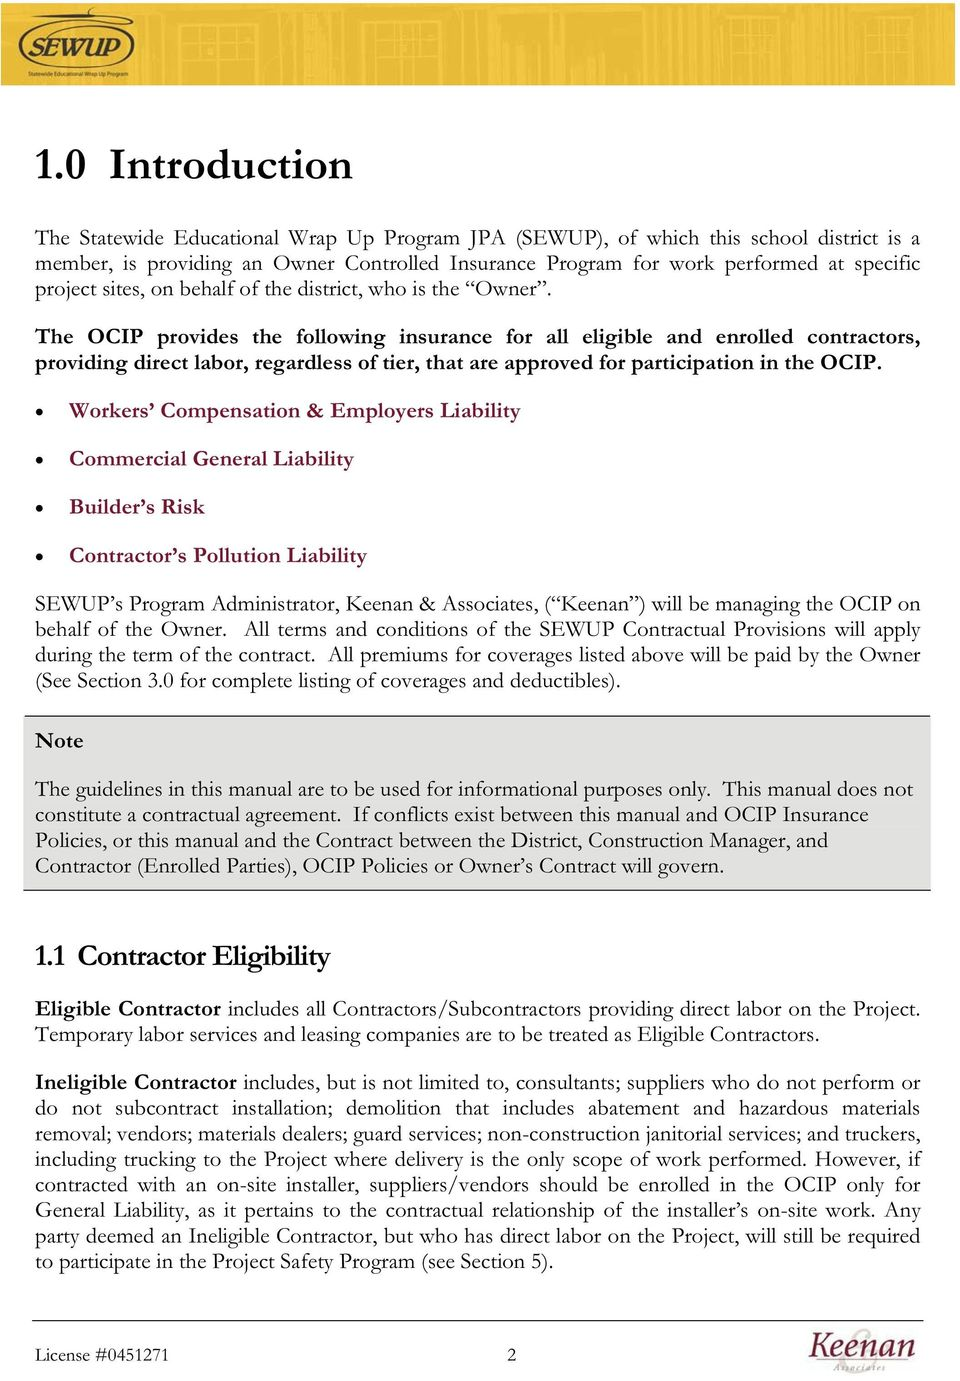 The OCIP provides the following insurance for all eligible and enrolled contractors, providing direct labor, regardless of tier, that are approved for participation in the OCIP.